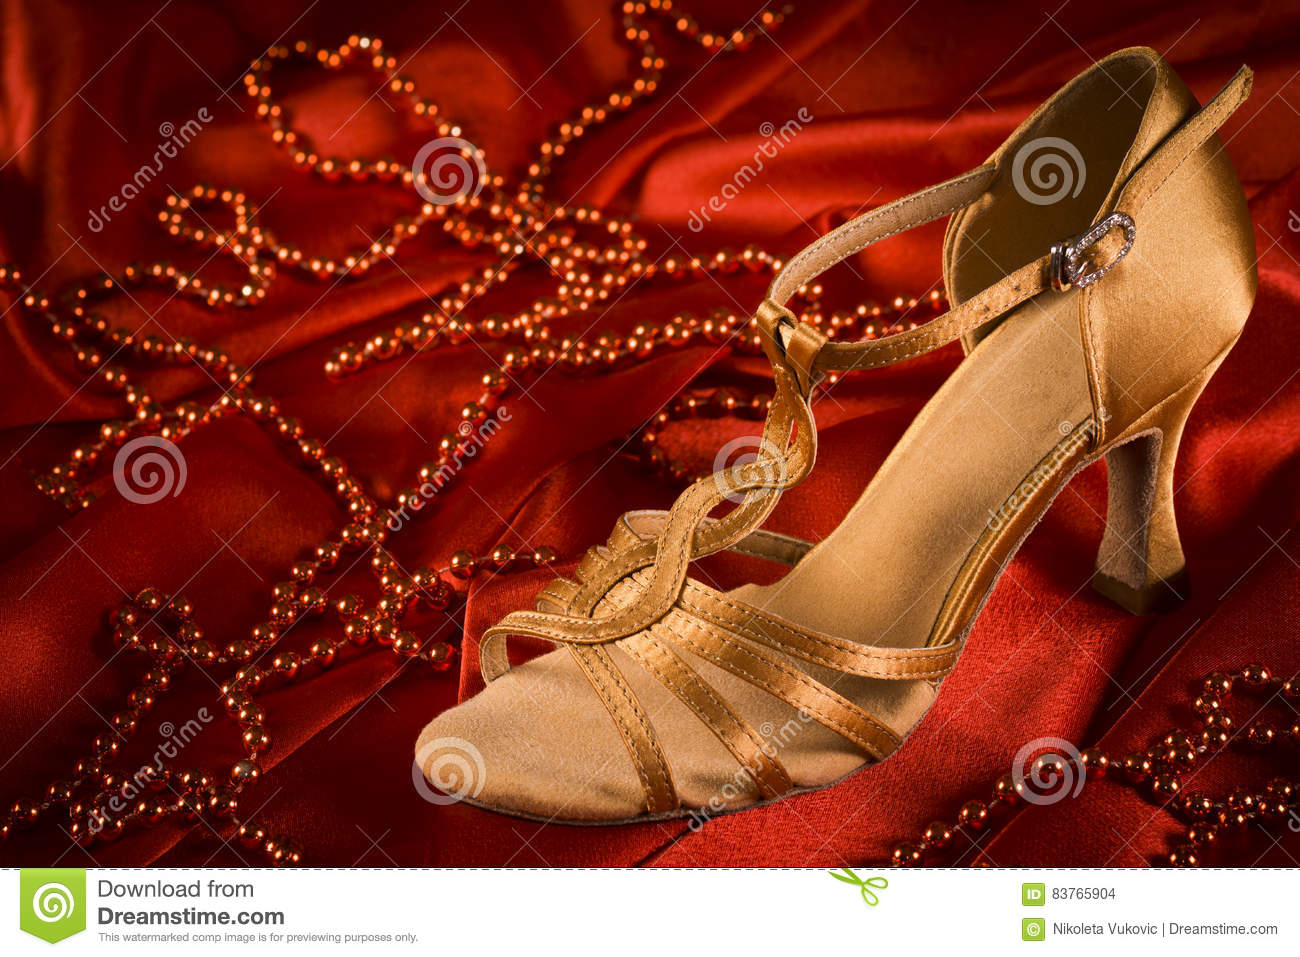 c53f2b817 Golden latin dance shoe is on red satin background with red pearls. More  similar stock images